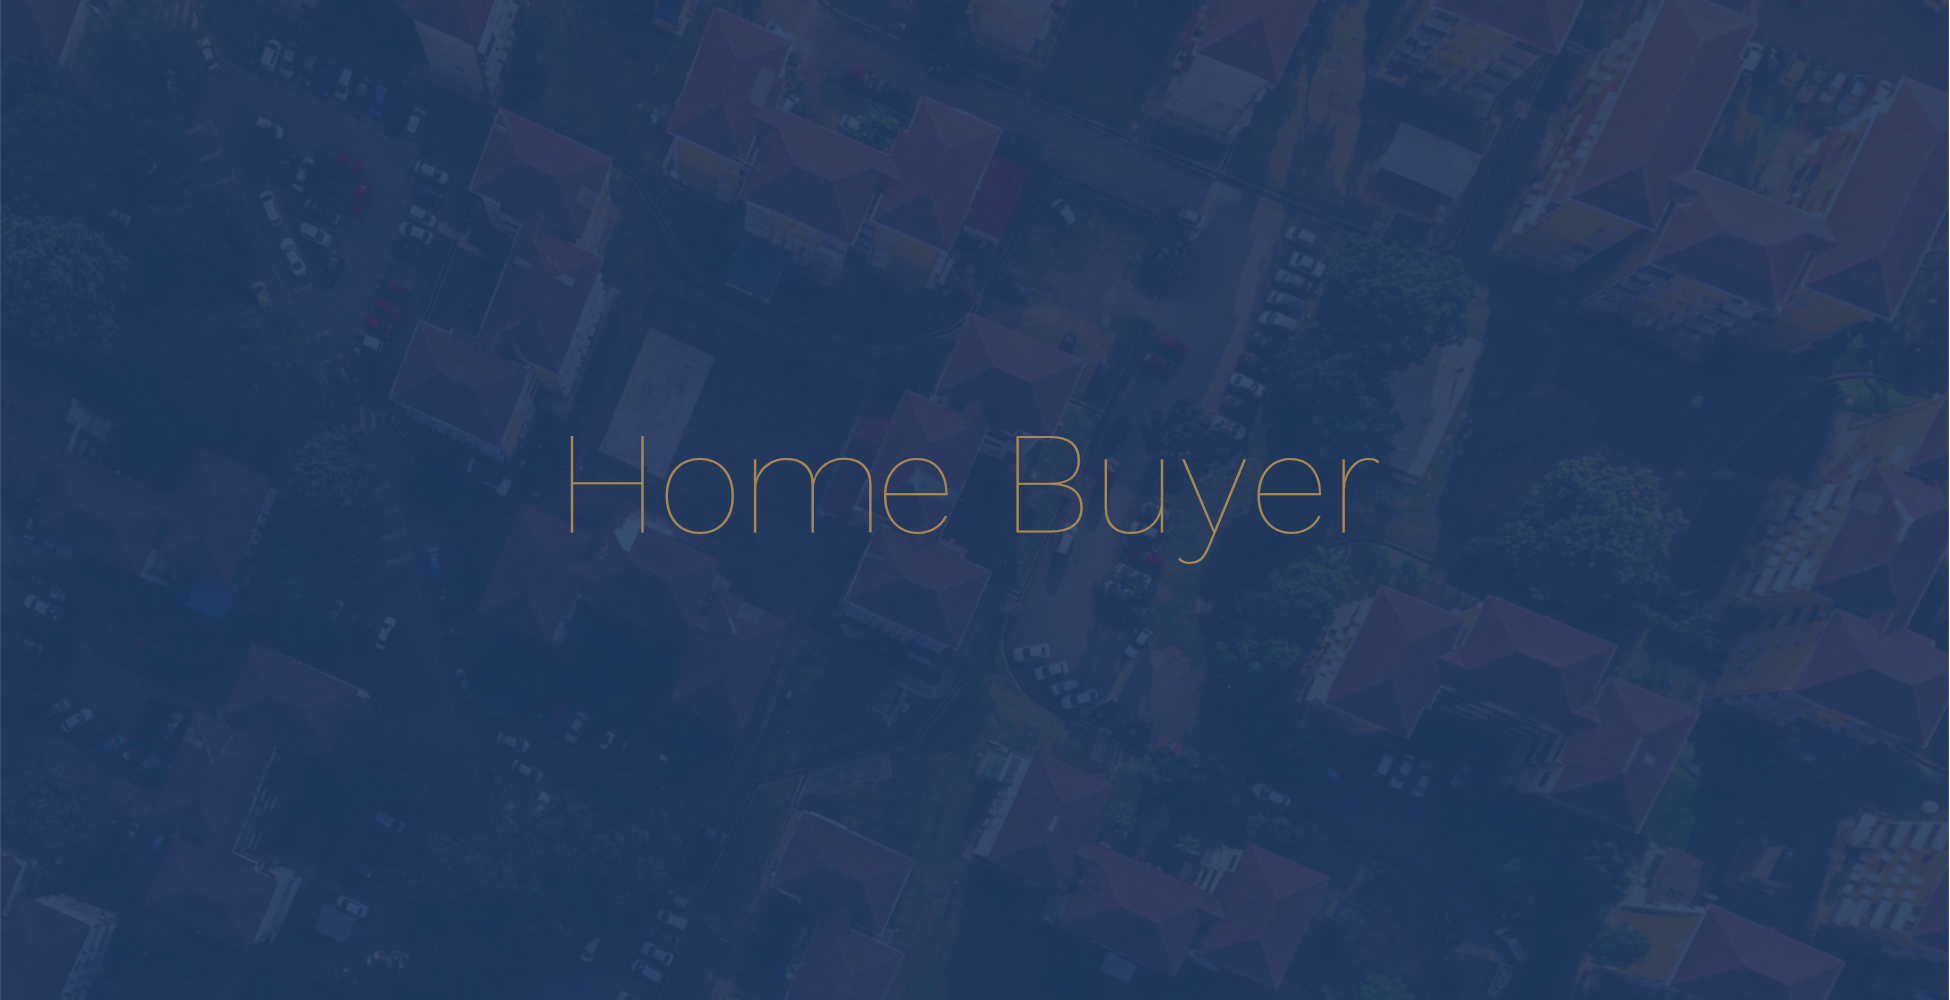 Home Buyer Engage Finance Header Image